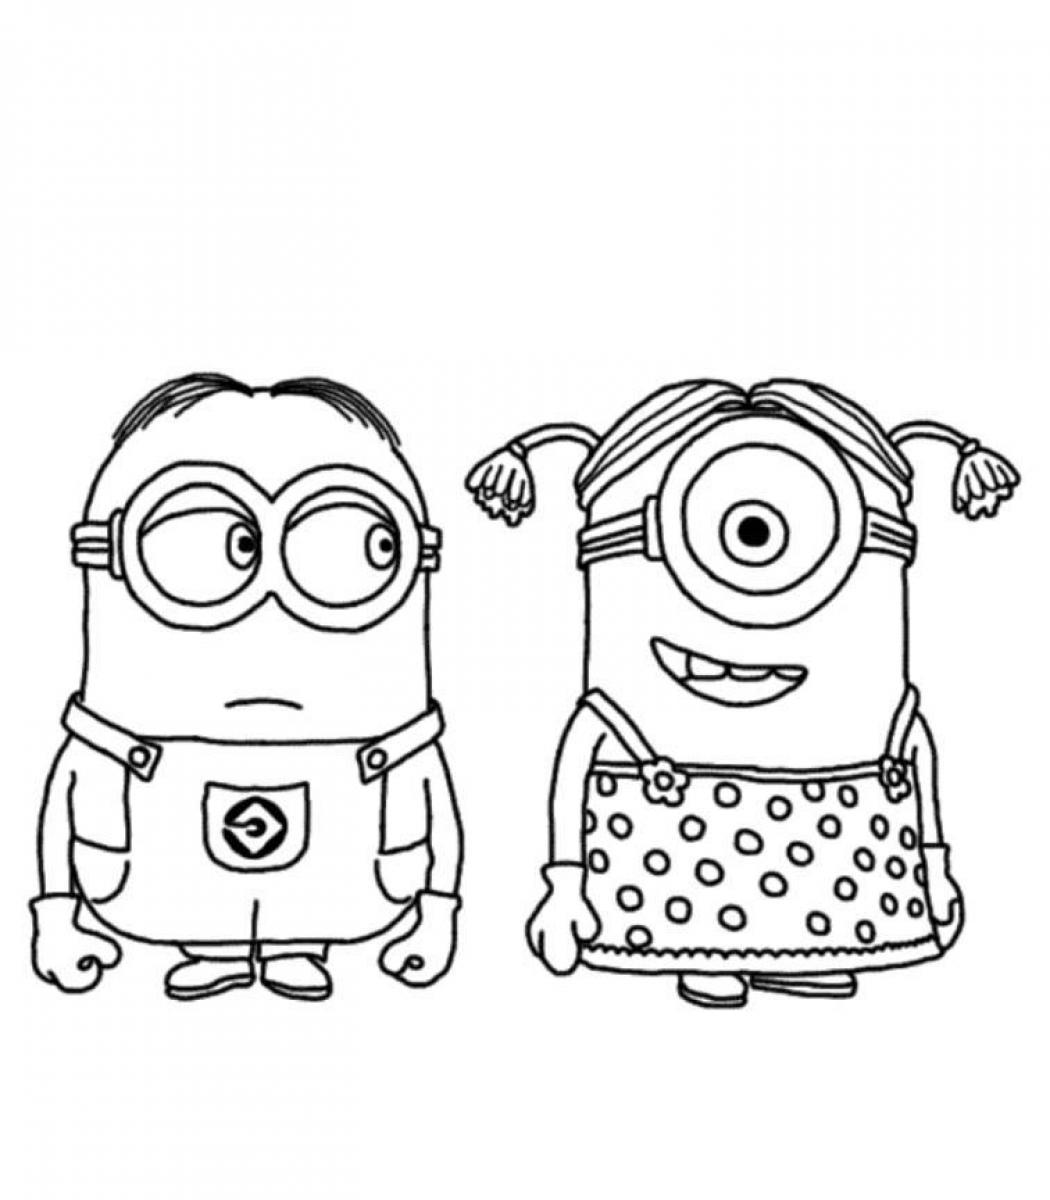 1050x1200 Printable Coloring Pages For Girls Minions